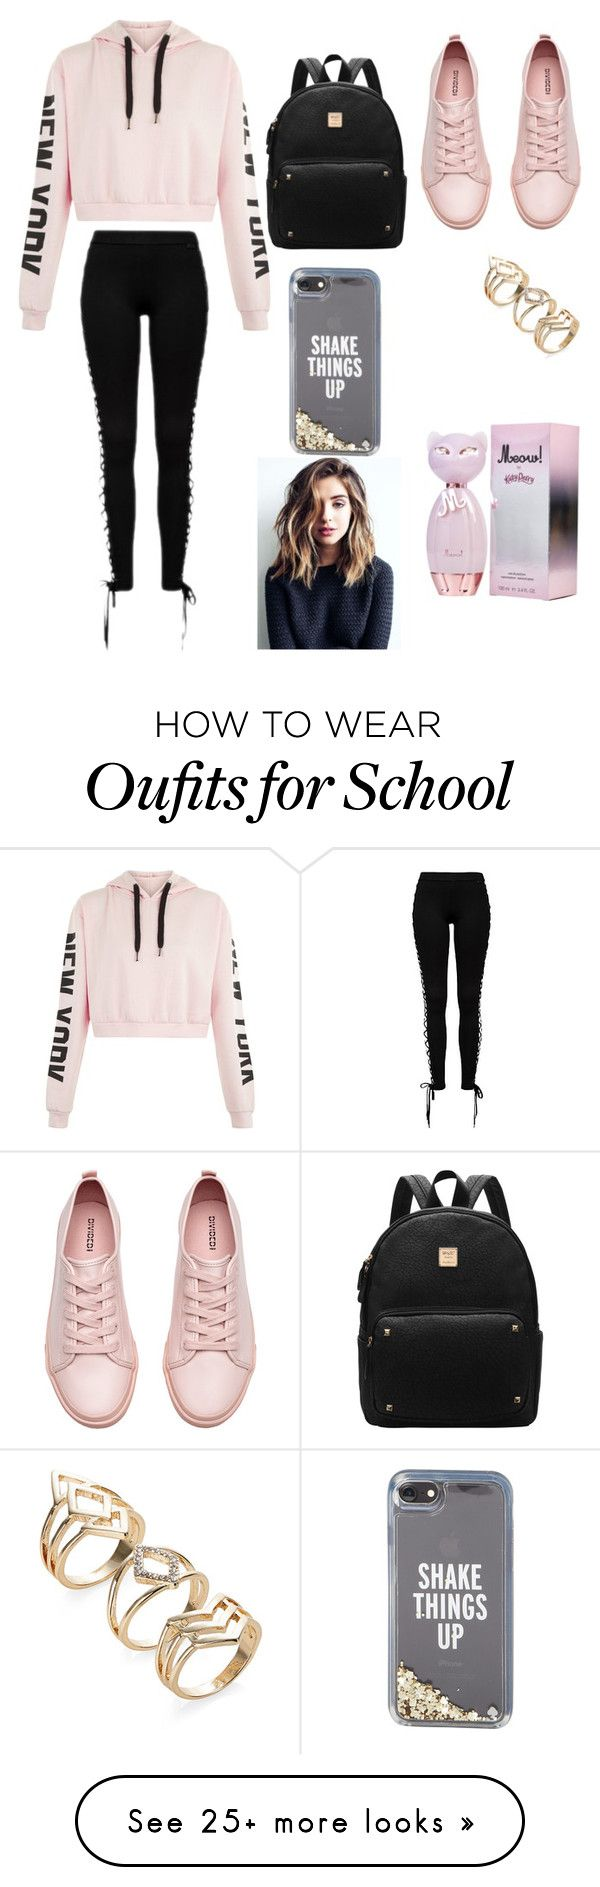 """my life"" by estrella-edily-lantigua-castro on Polyvore featuring H&M and Kate Spade"